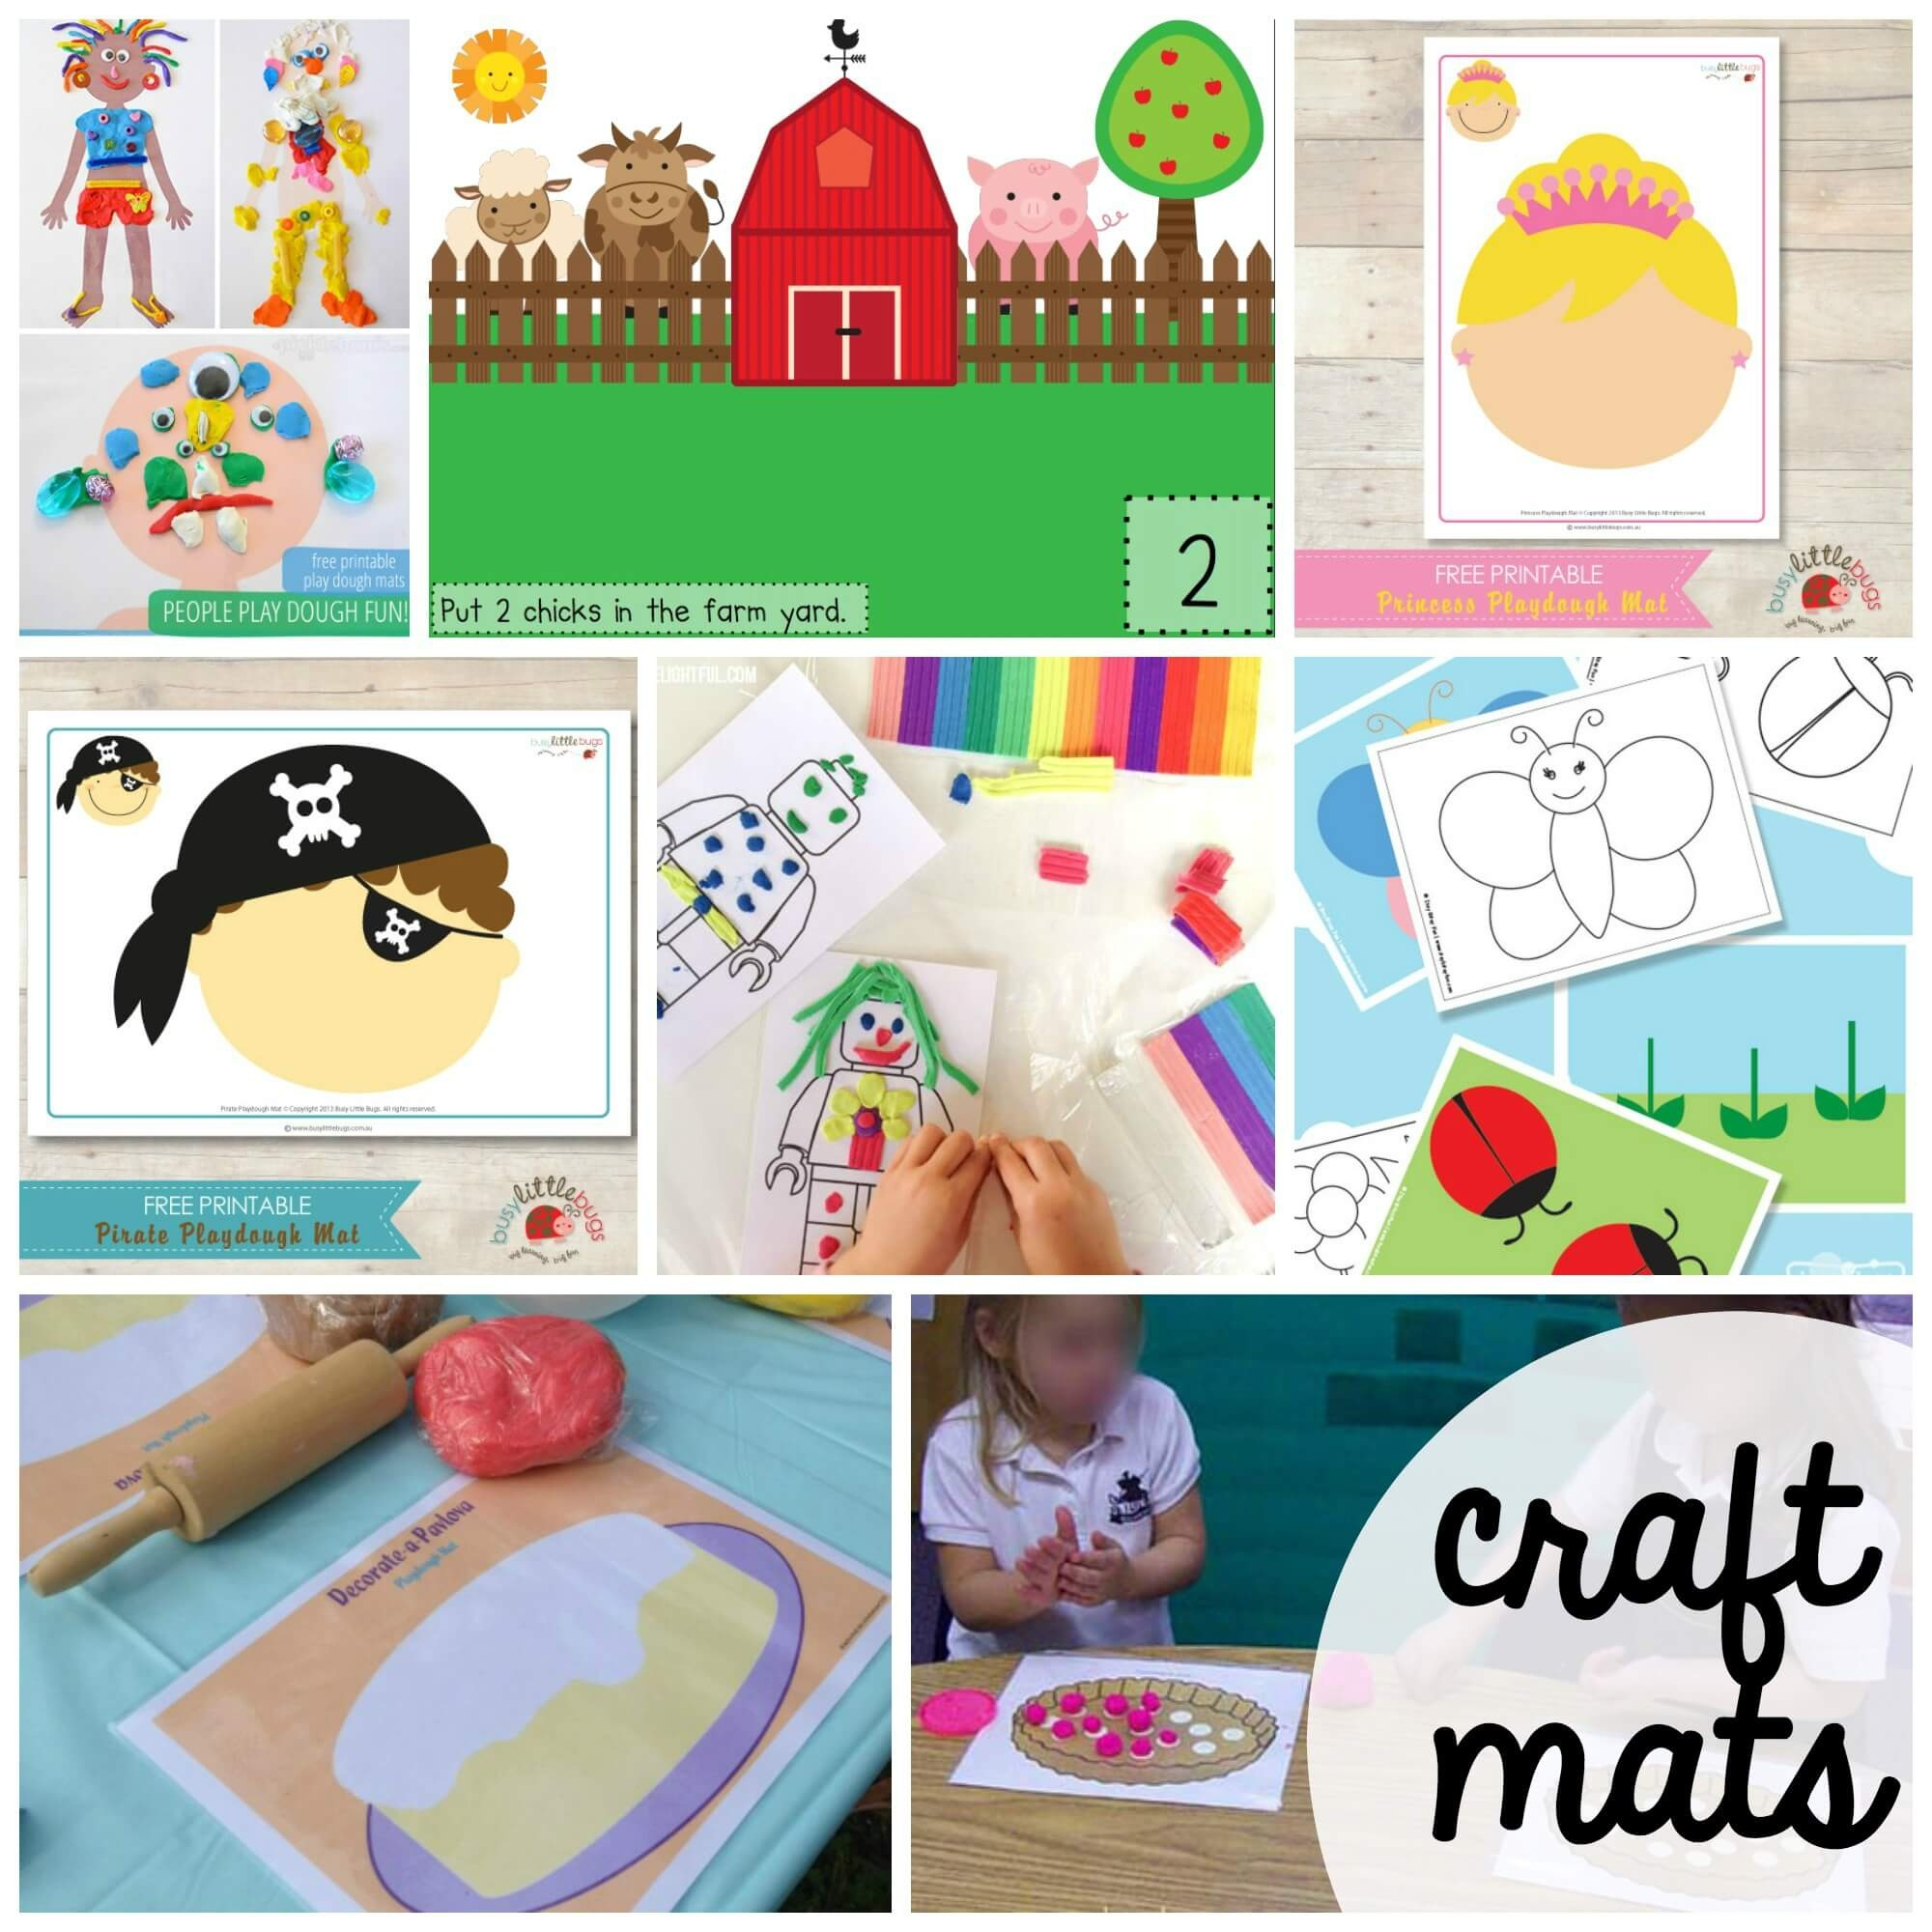 100 Free Playdough Mats - Playdough To Plato - Alphabet Playdough Mats Free Printable